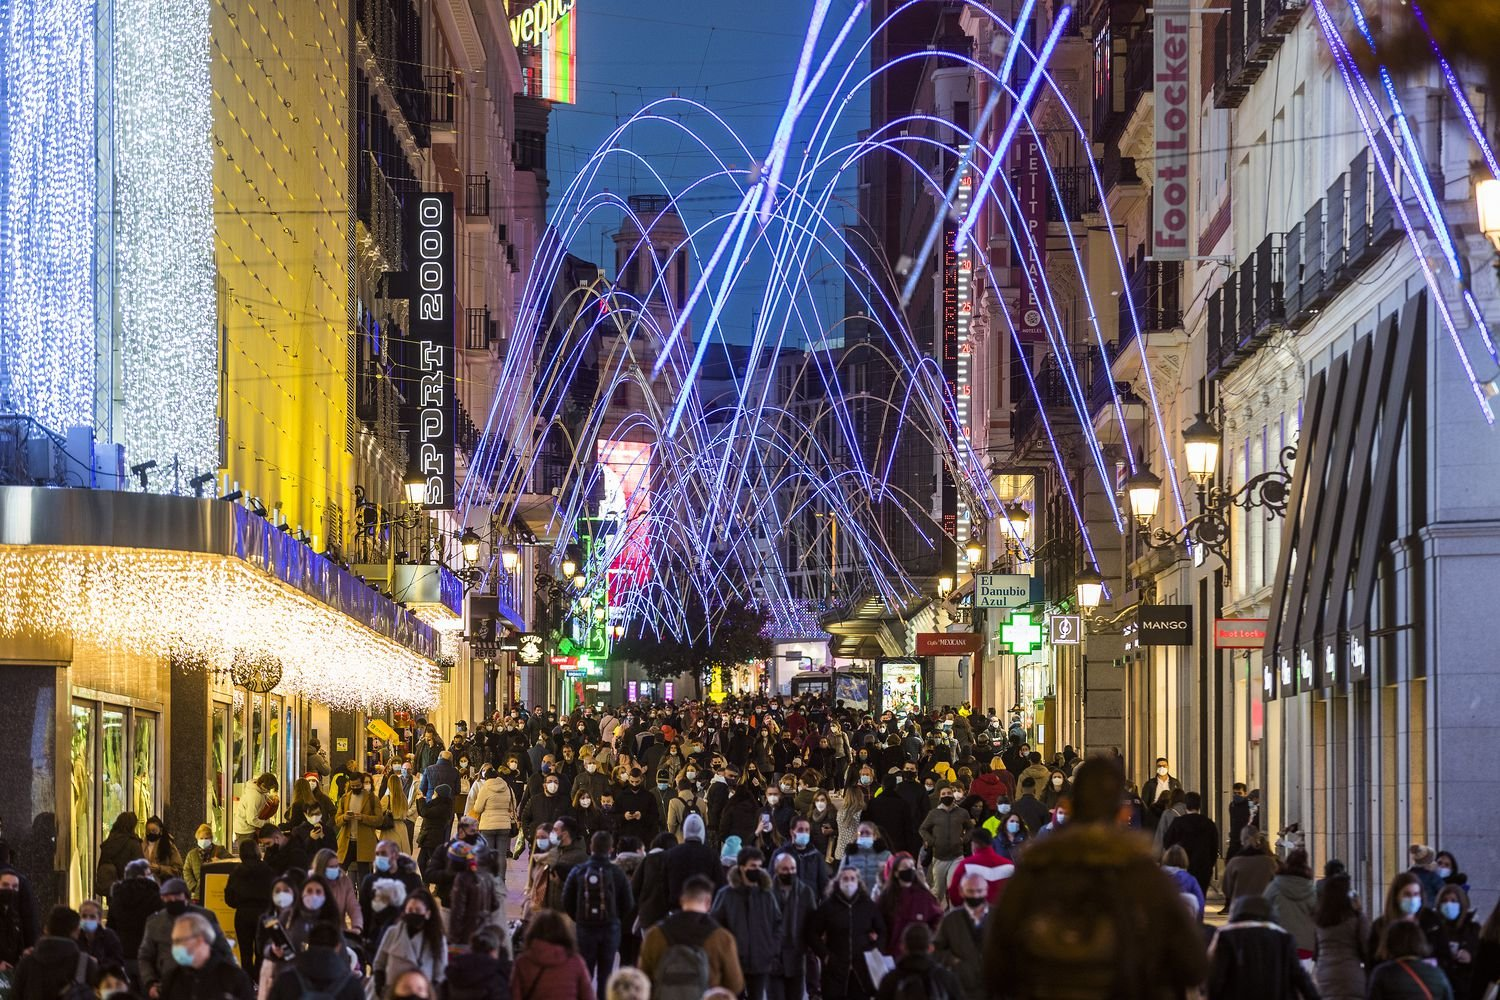 Crowds on Preciados street in downtown Madridvisa-news-rospersonal-Mikhaylov-Evgeny-Matveevich-Immigration-Agent-Moscow.jpg